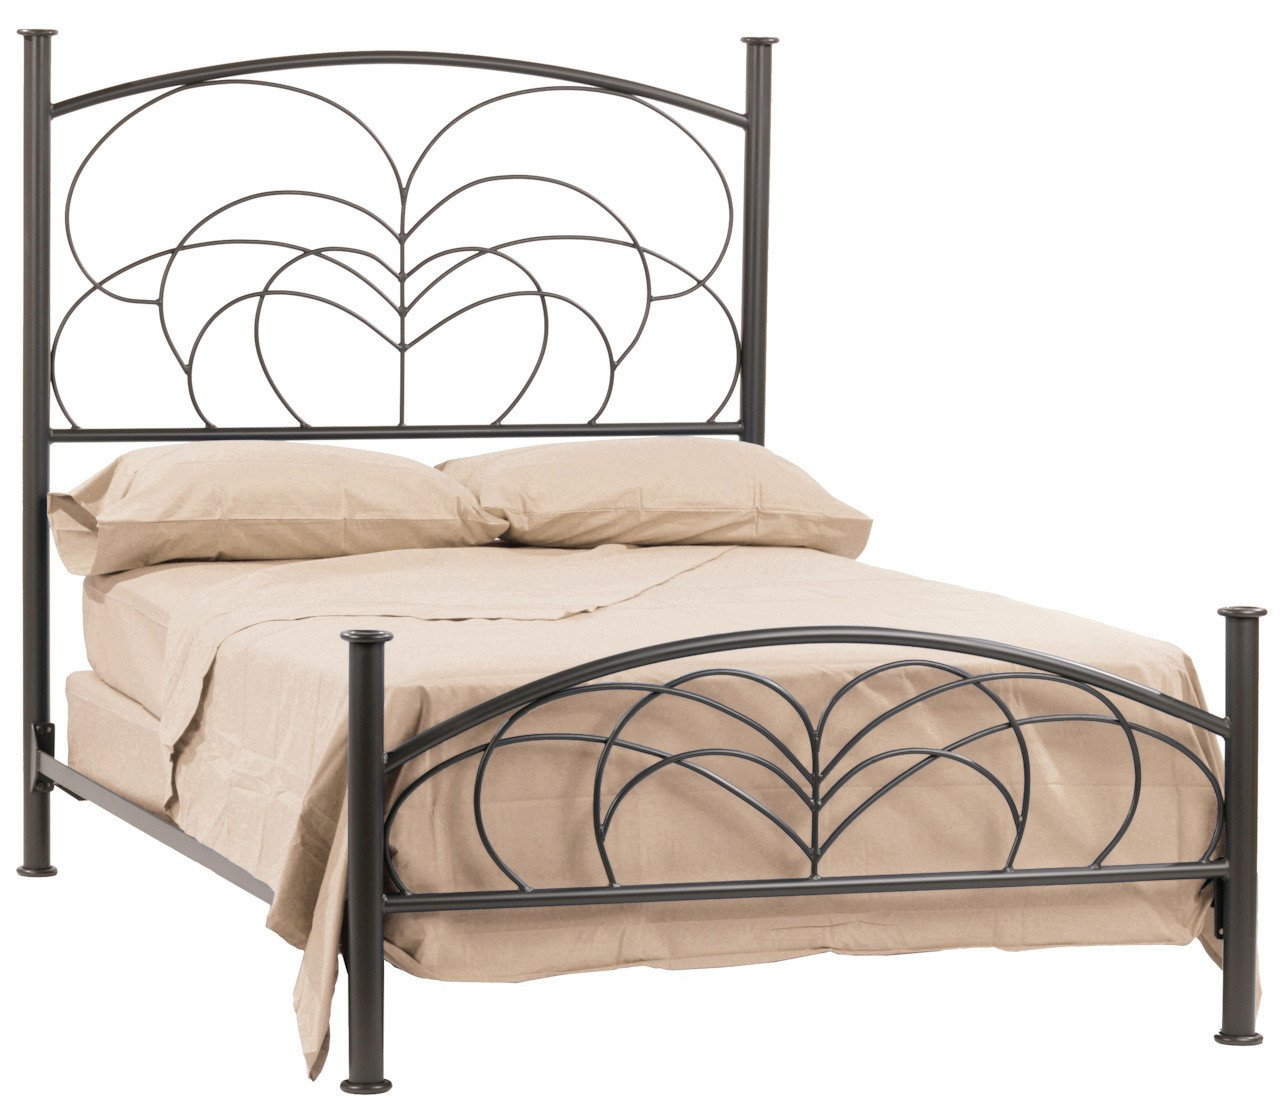 Full Bed Willow 4172 Product Photo